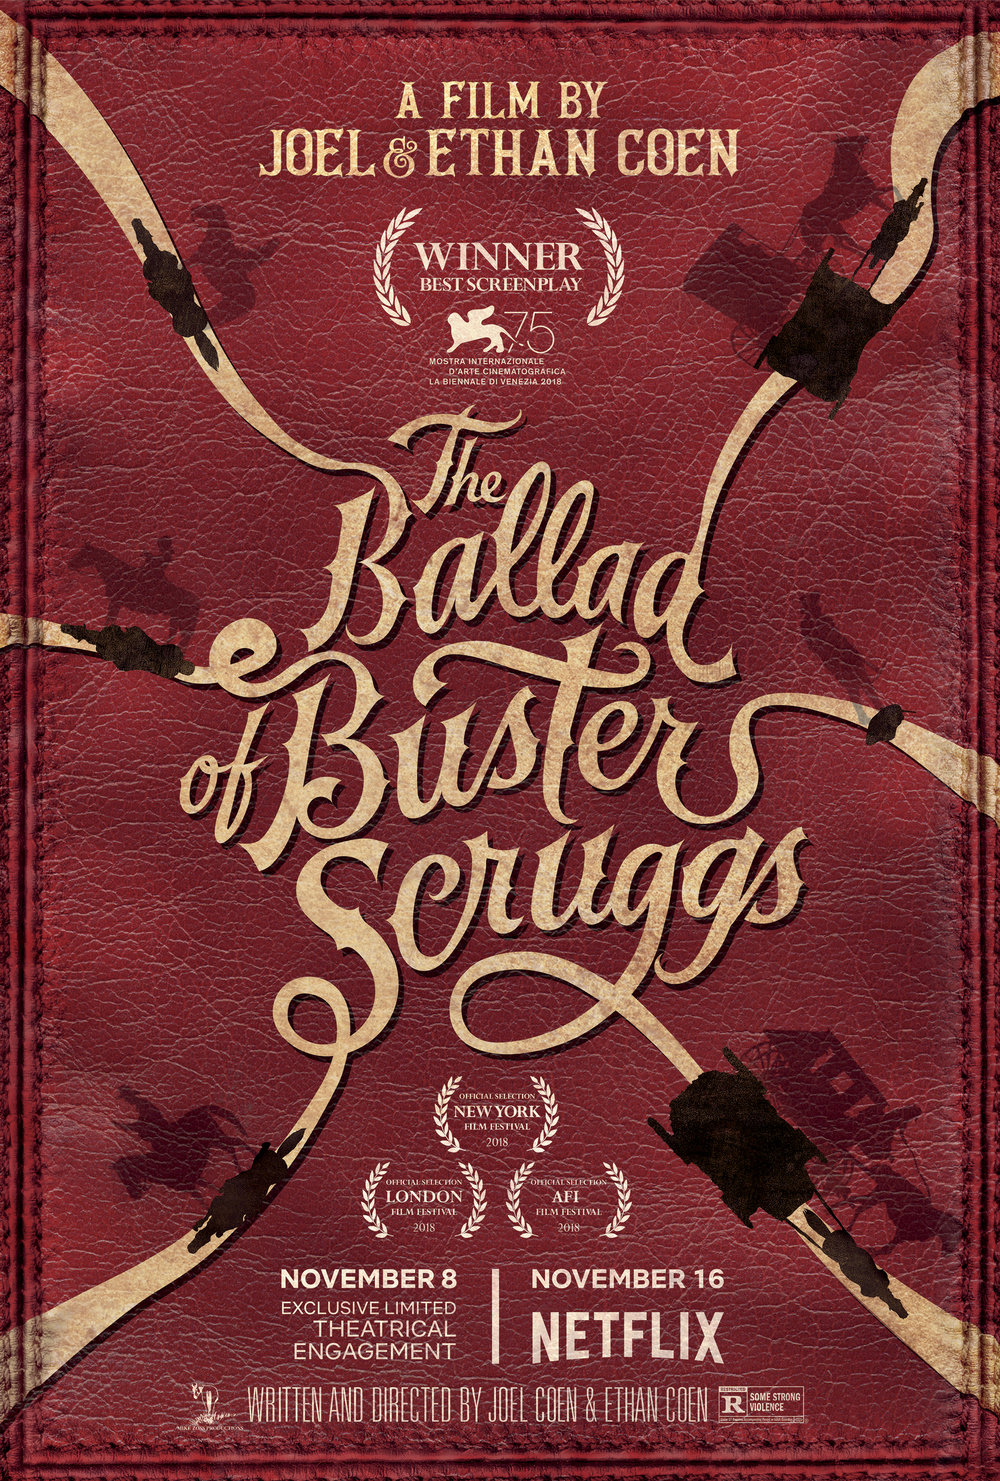 The Ballad of Buster Scruggs is an anthology movie (which I tend to love), and offers such a varied range of experiences and themes that I think anyone who likes western movies will find something to love here. -